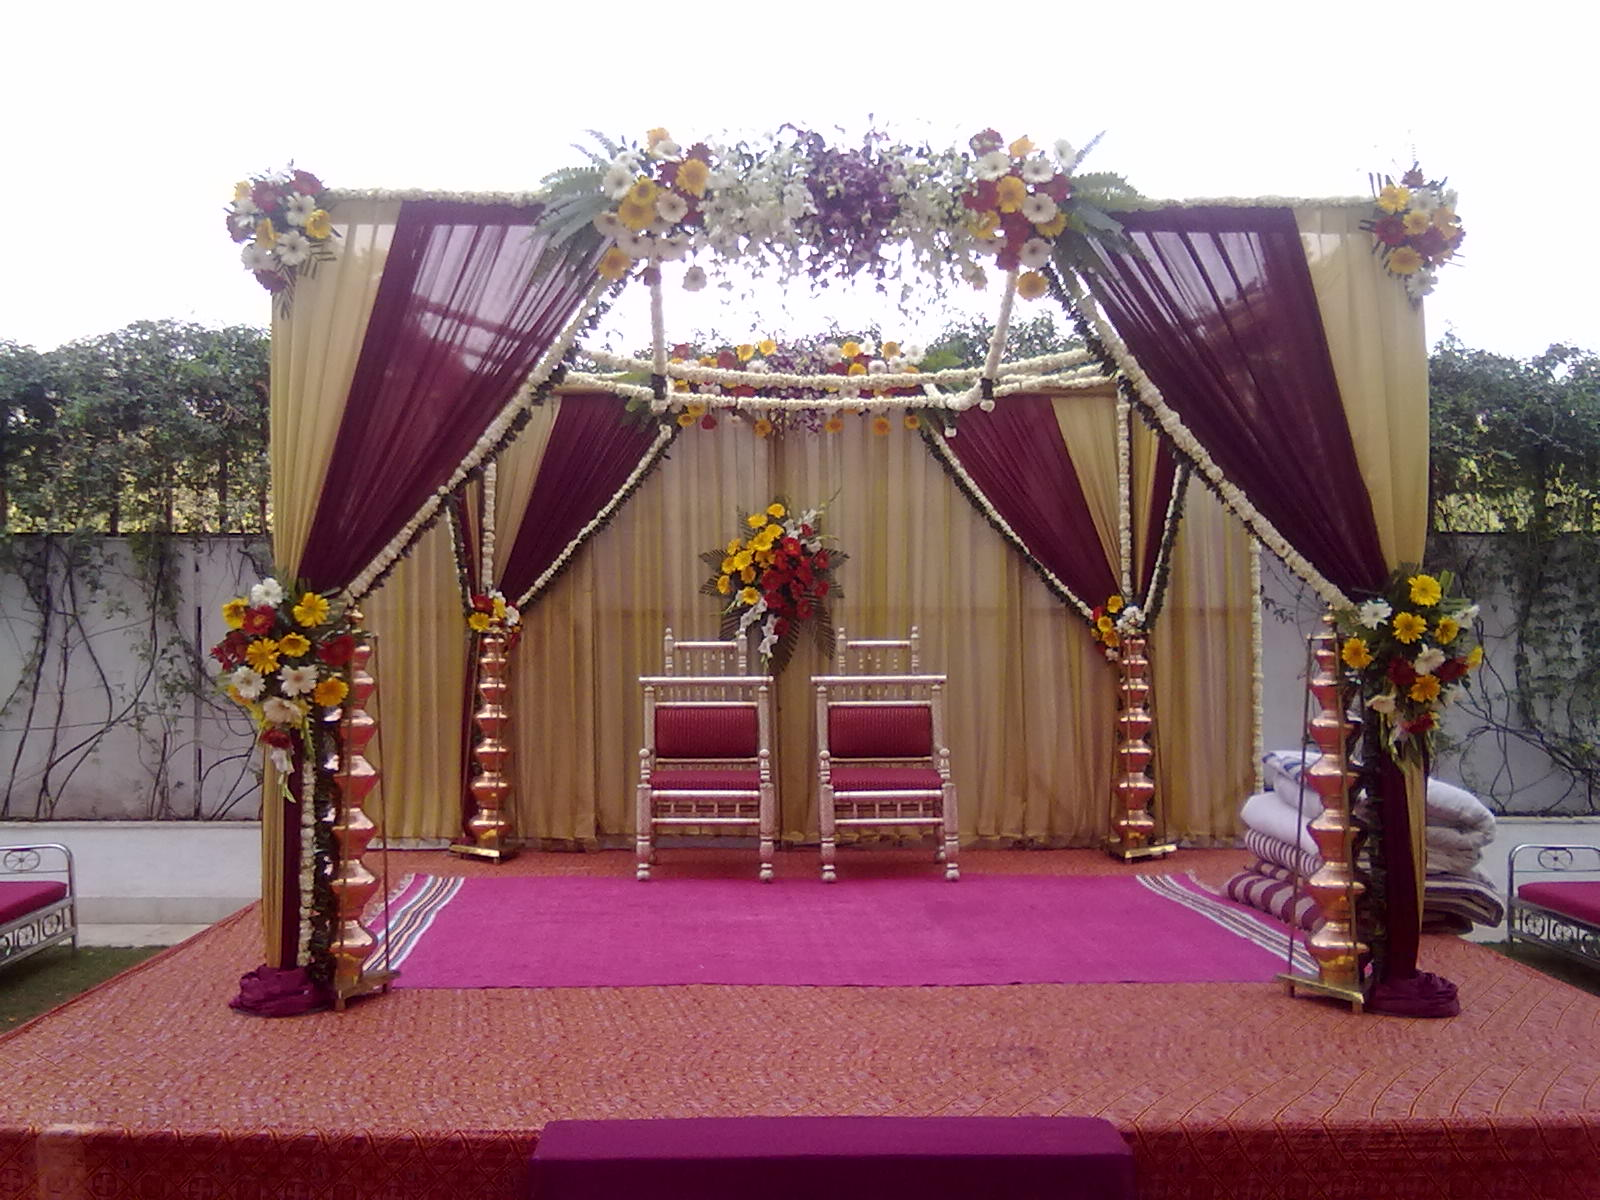 About marriage marriage decoration photos 2013 marriage Home and decoration